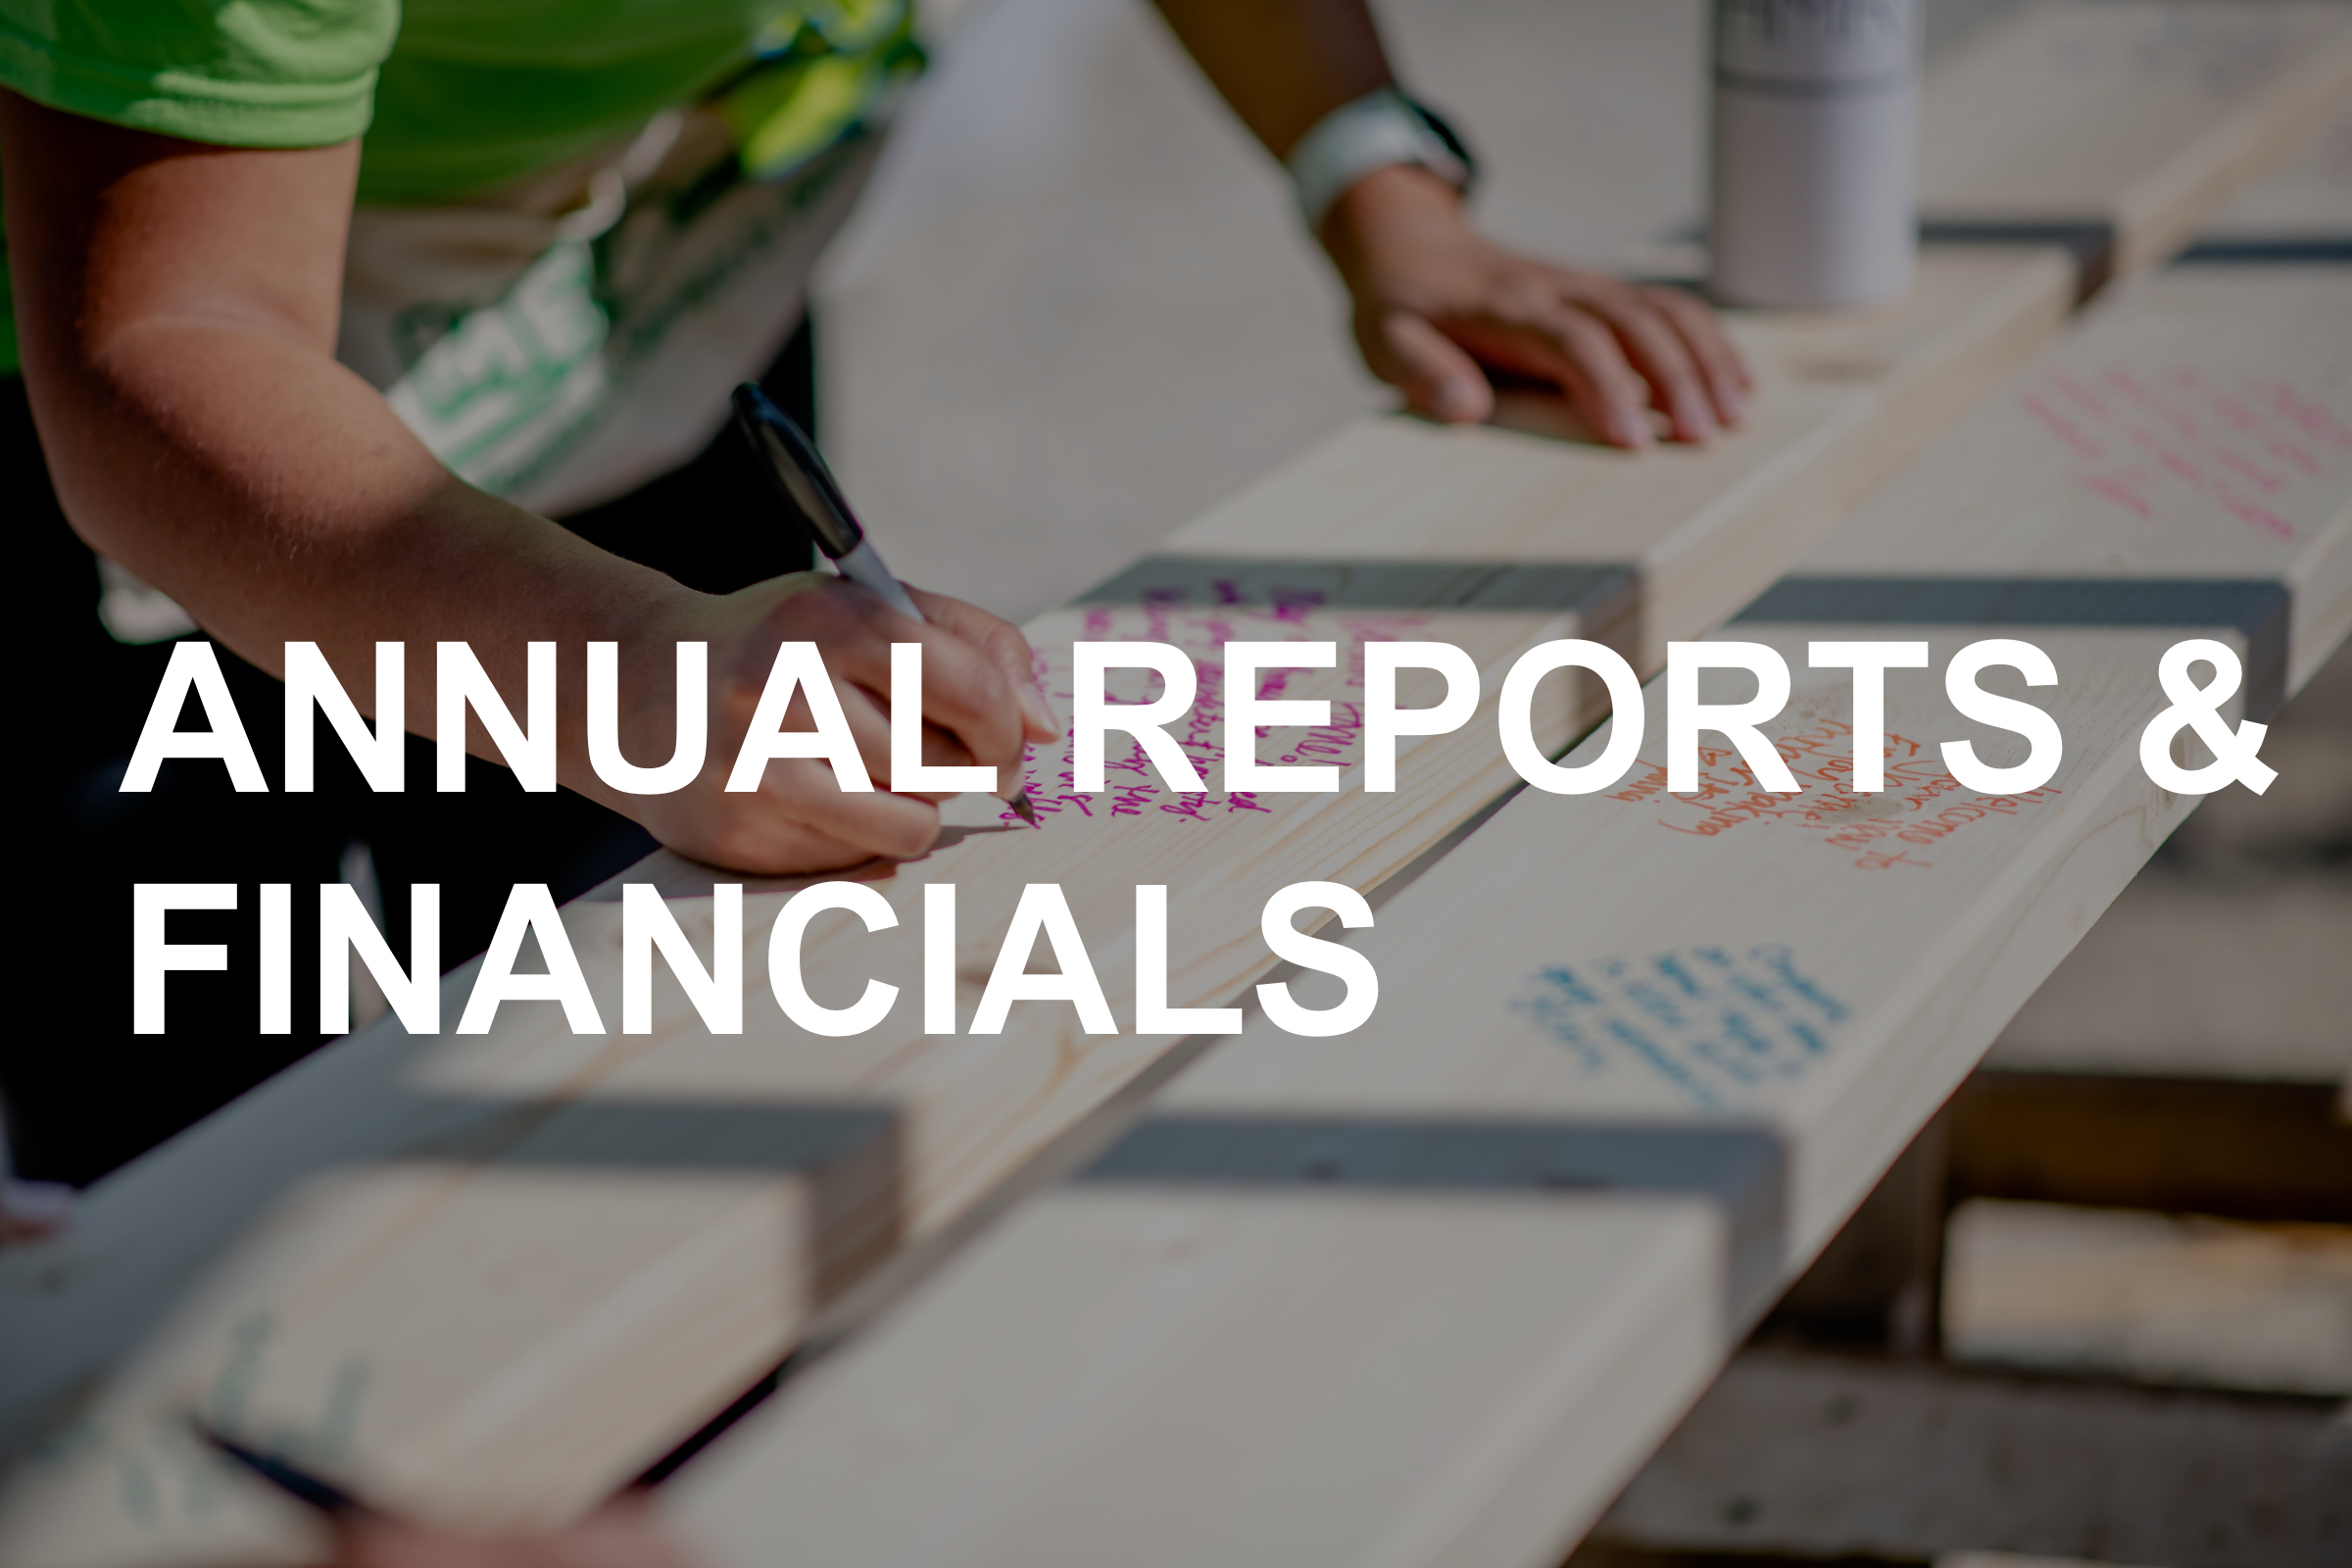 Annual Reports & Financials